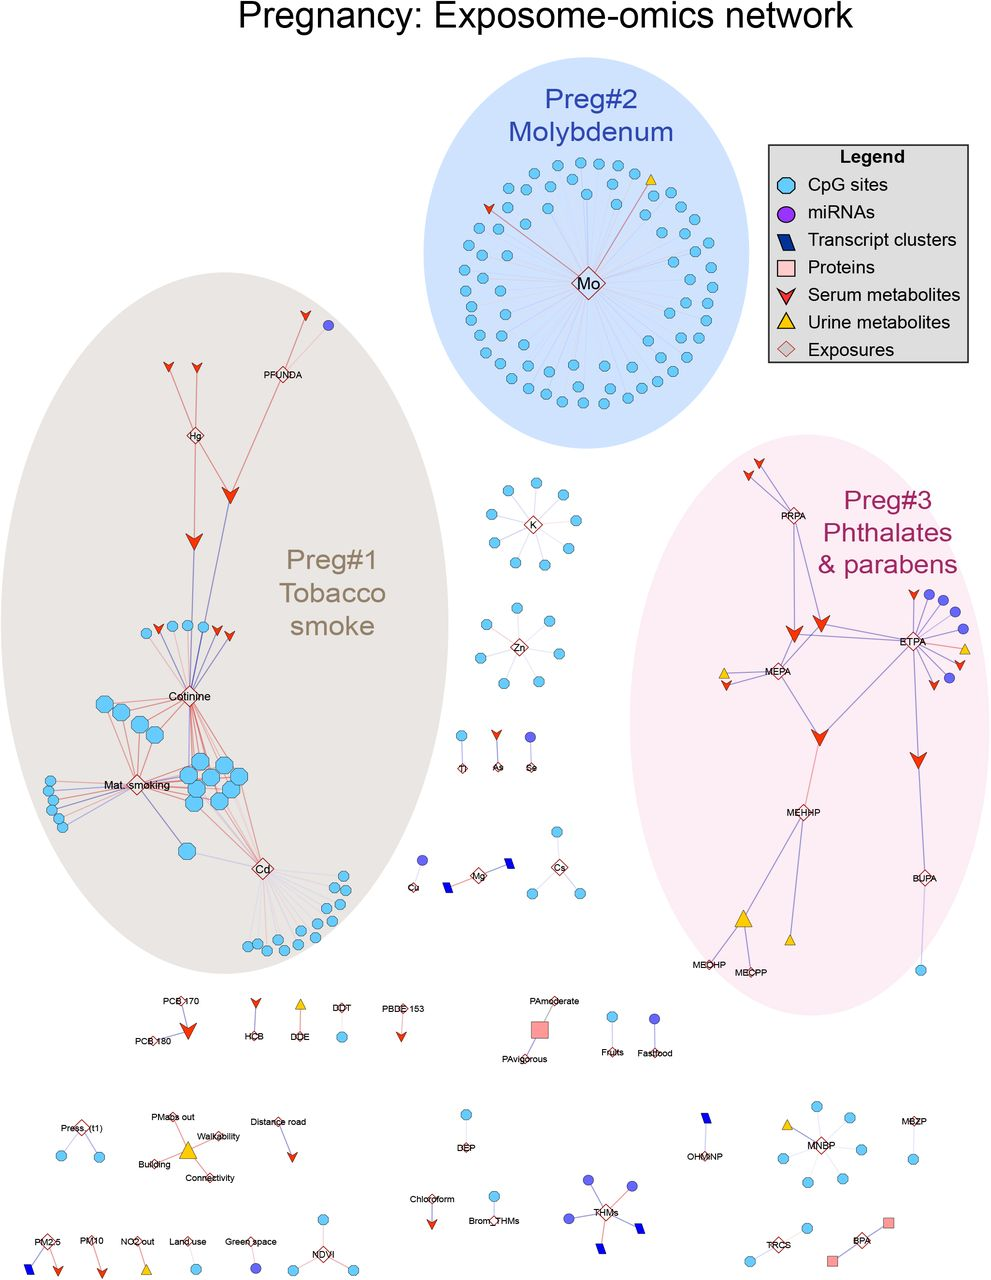 Multi omics signatures of the human early life exposome   medRxiv